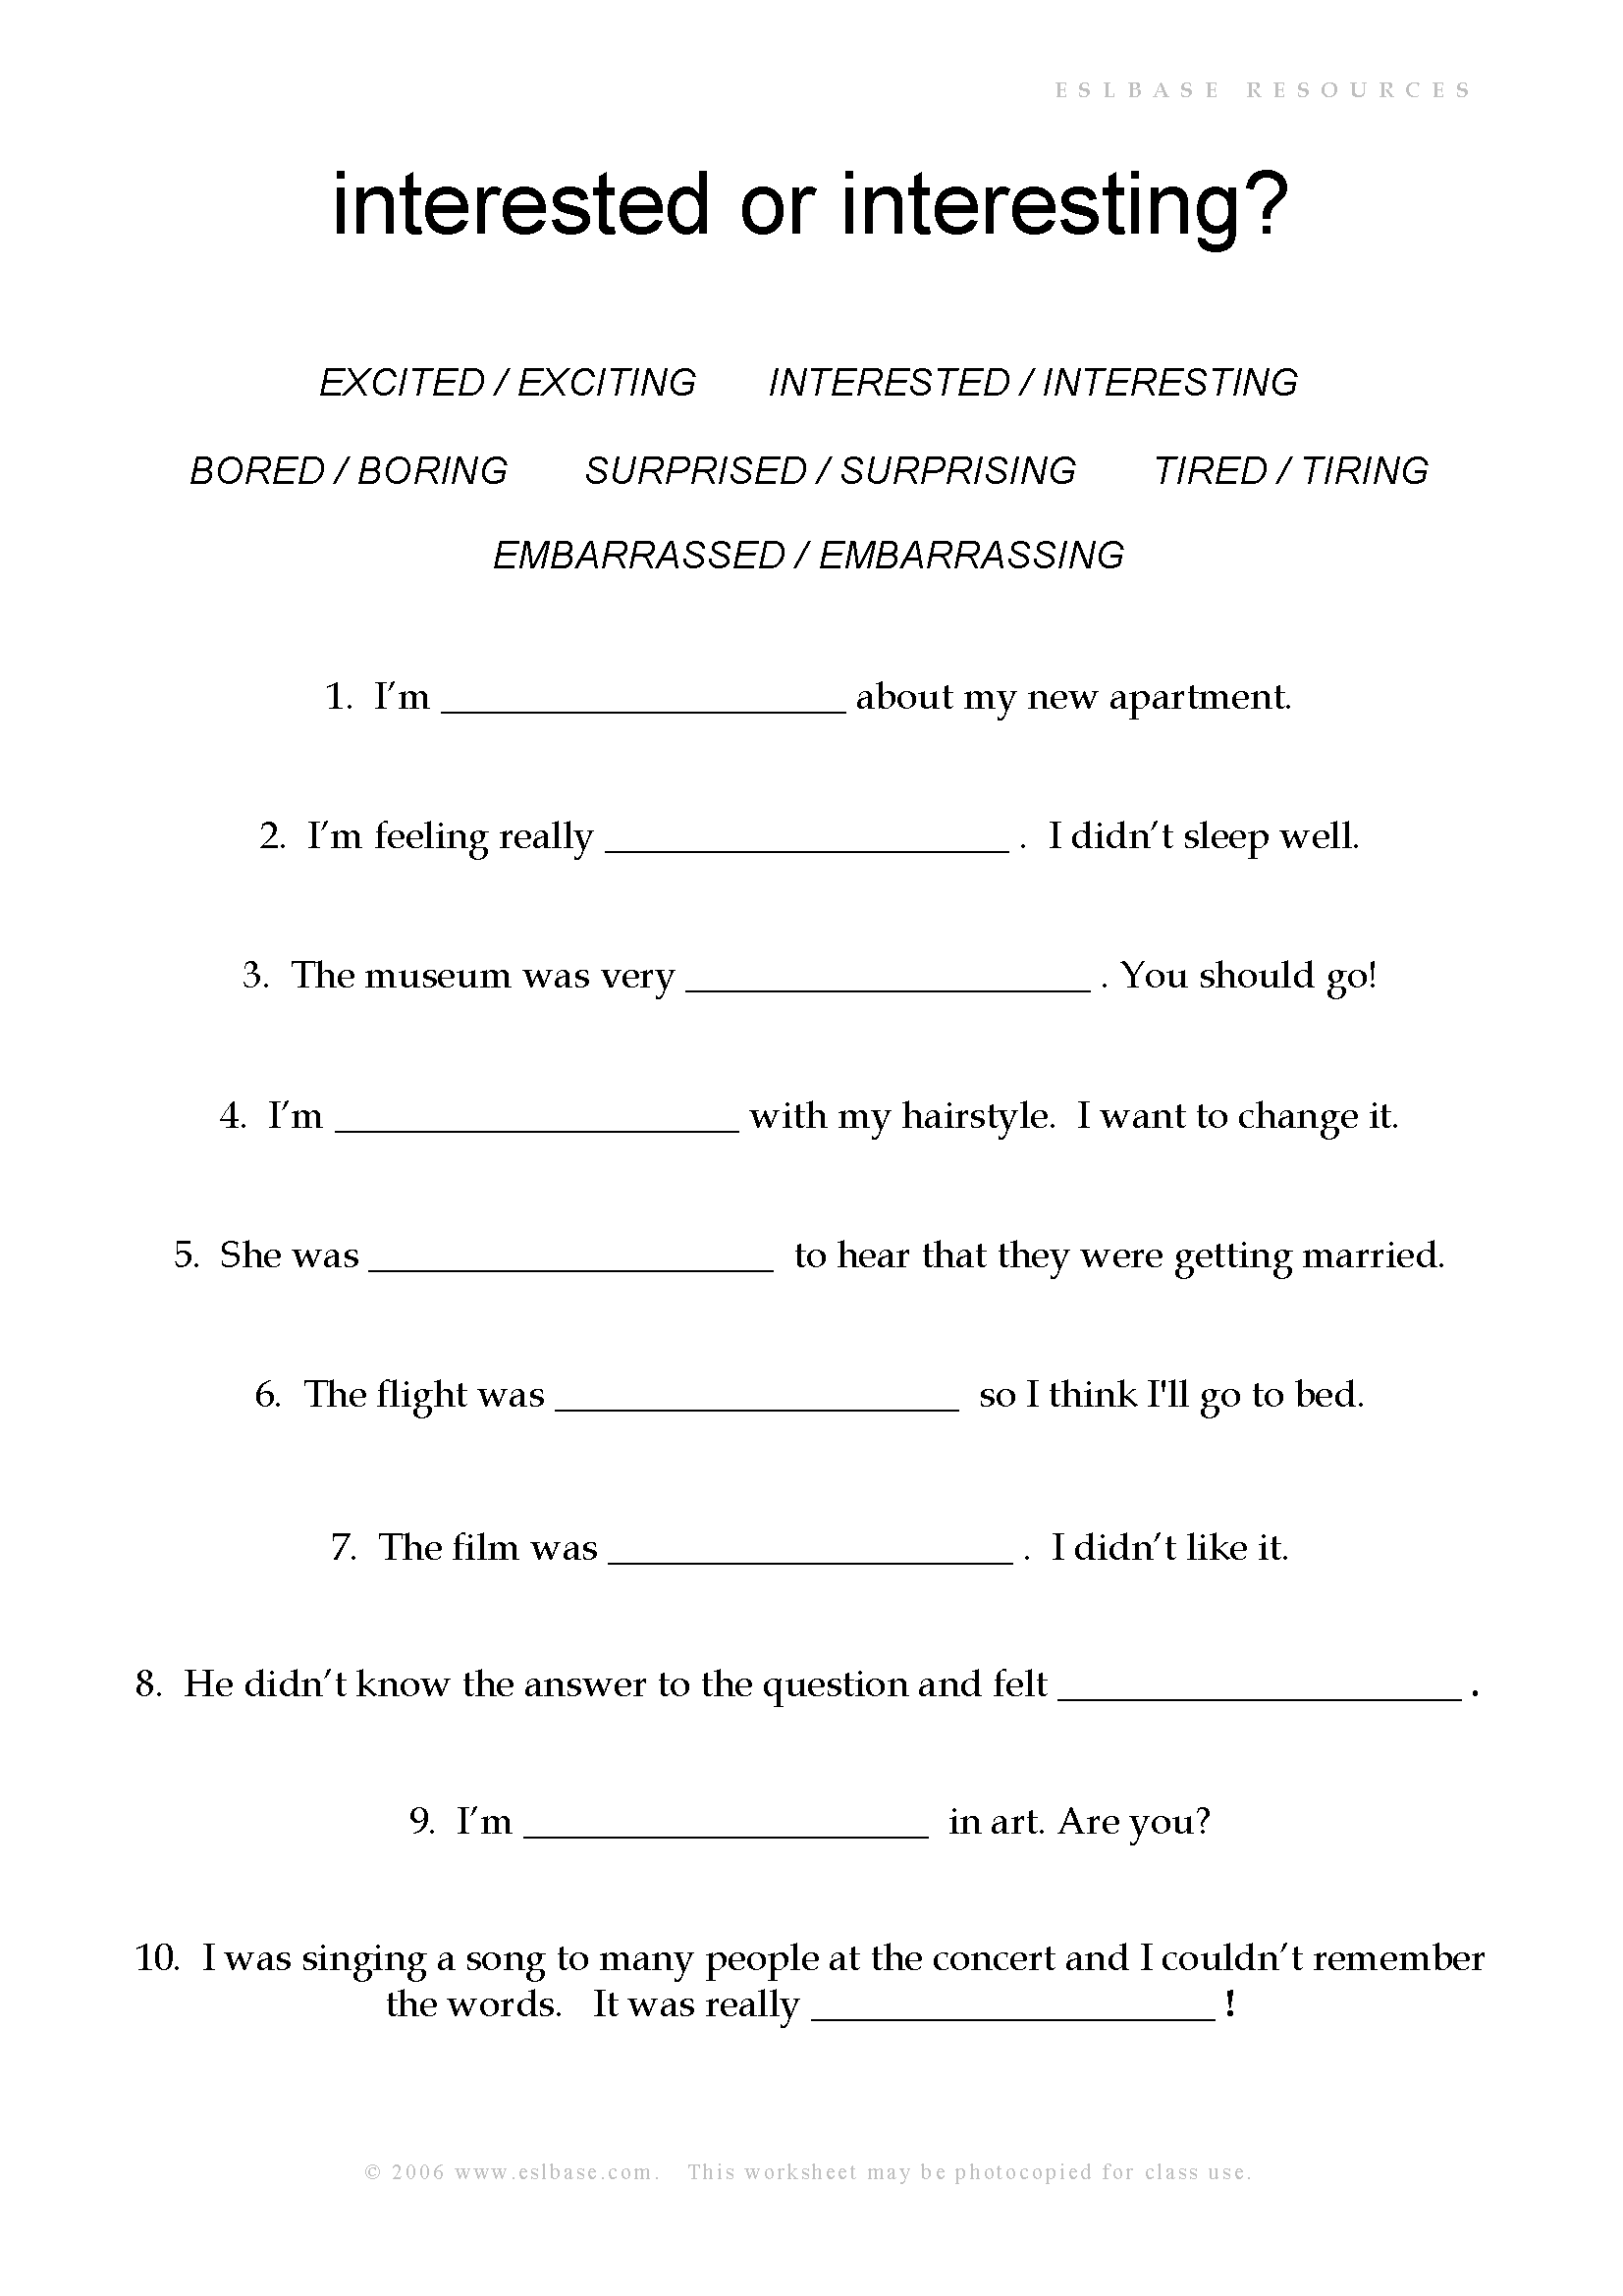 worksheet. Adjectives Worksheets 4th Grade. Grass Fedjp Worksheet ...